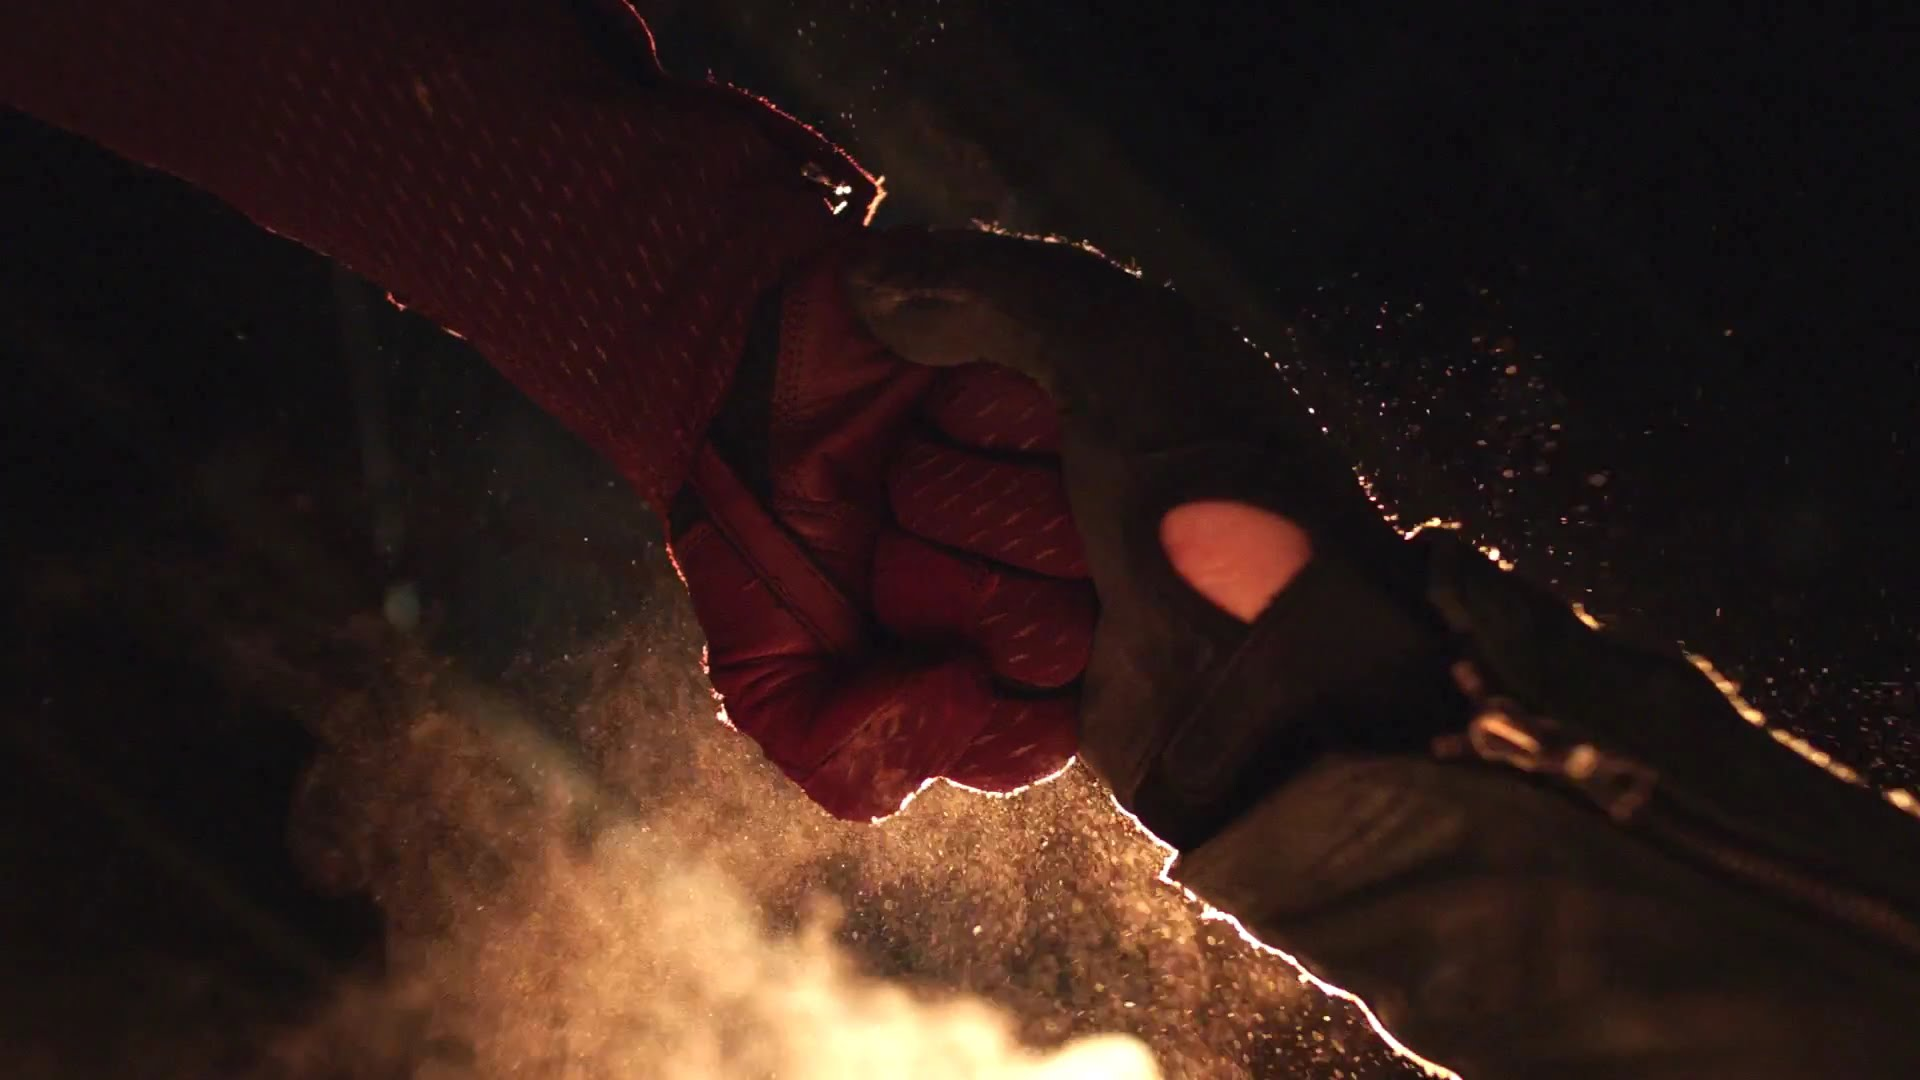 The Flash   Flash vs Arrow Trailer 1920x1080